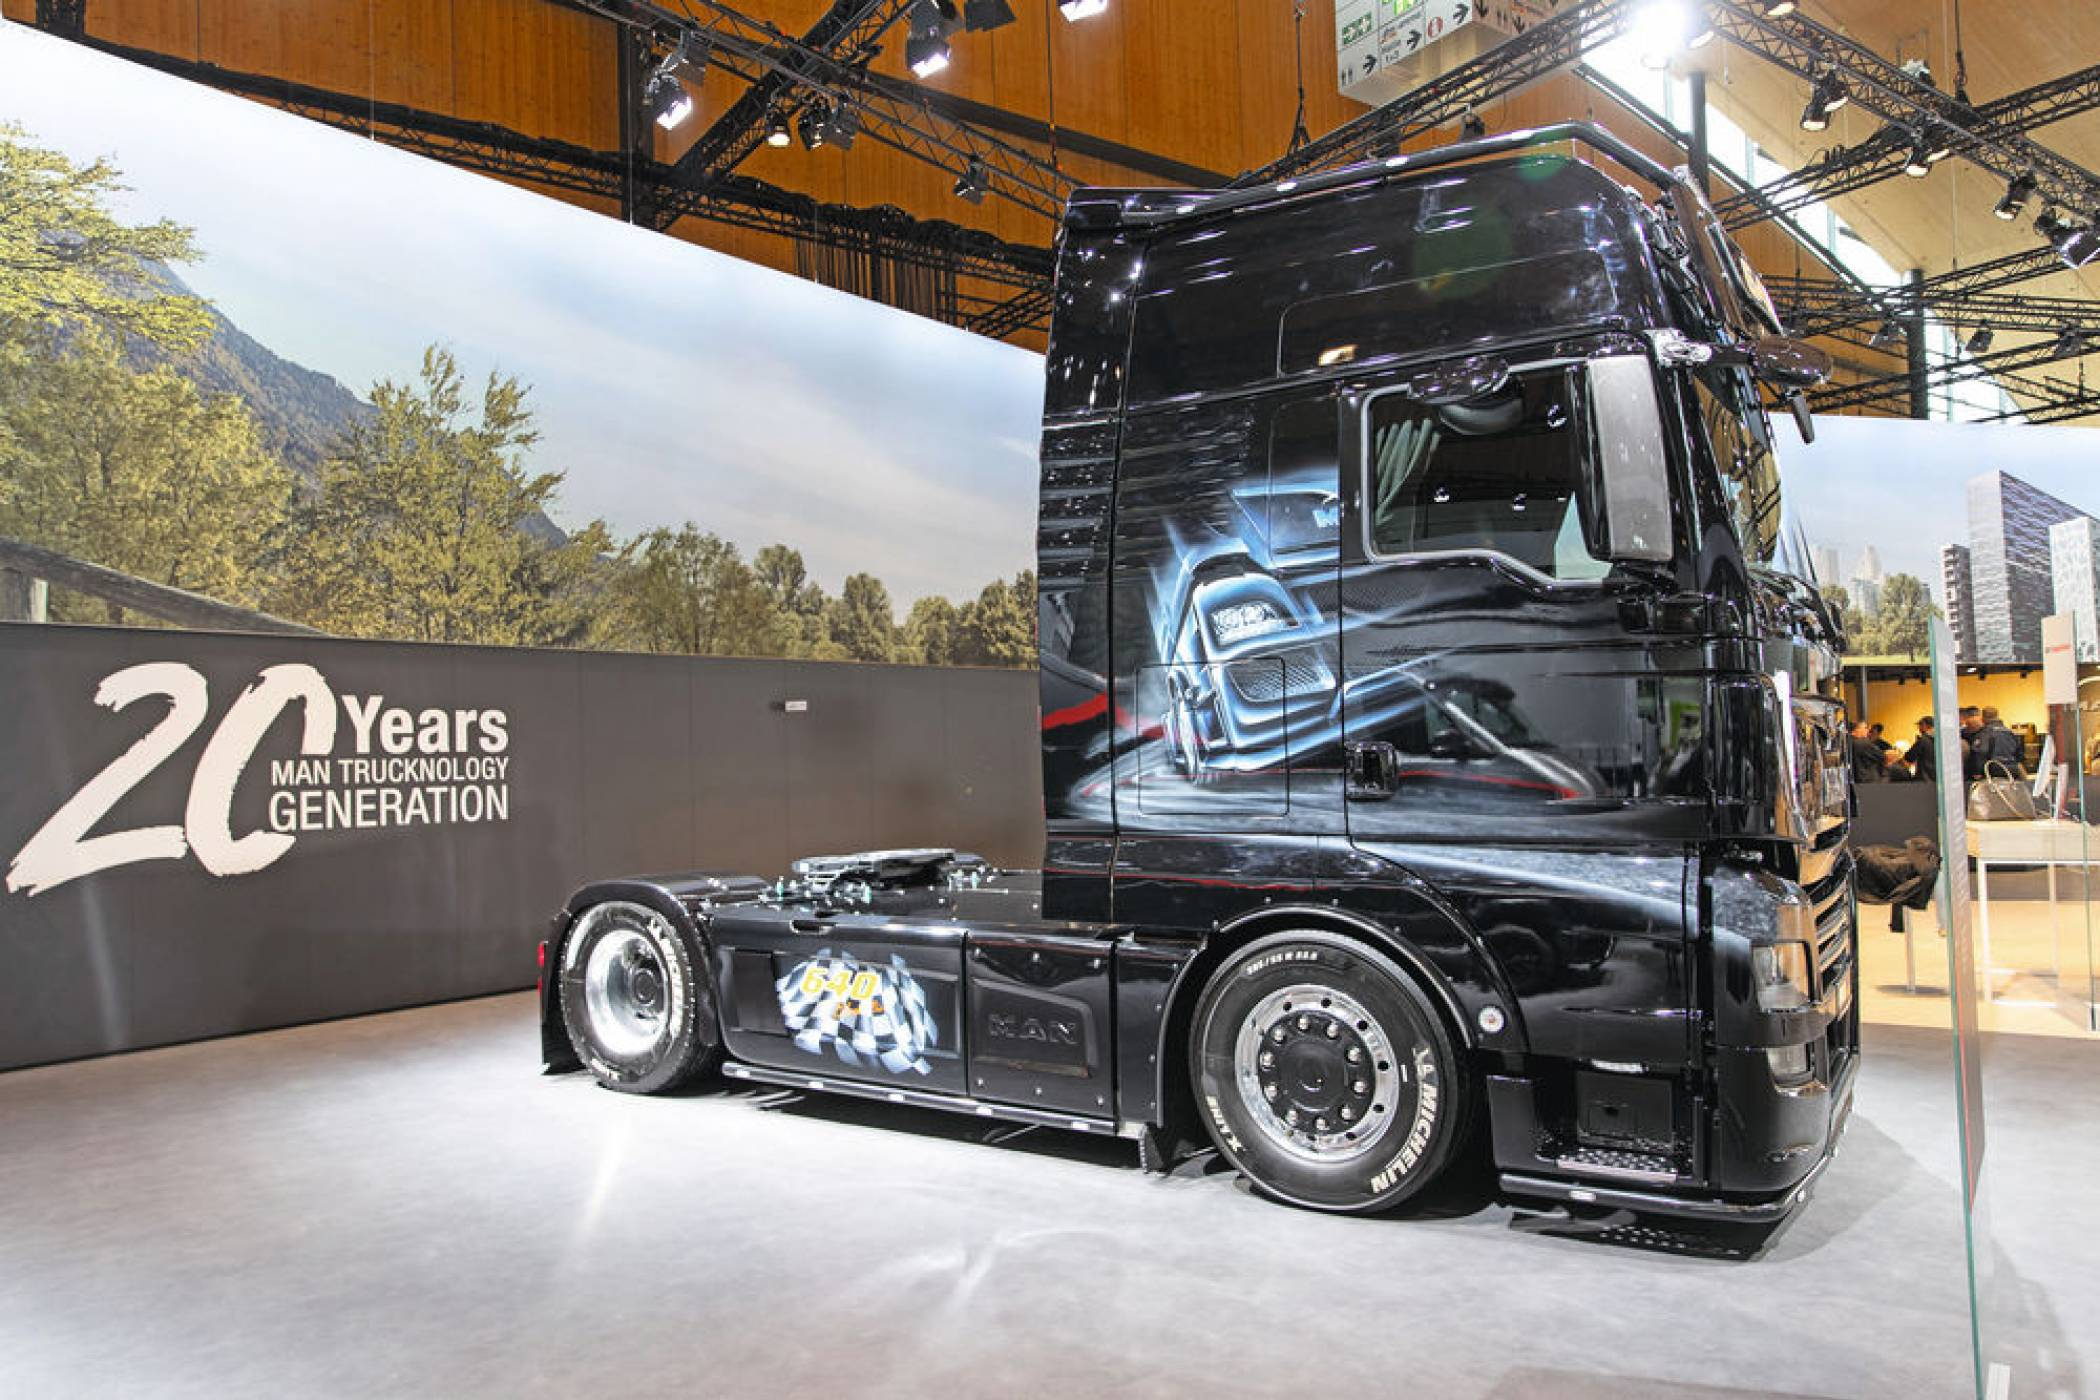 20 Years: MAN Trucknology Generation.